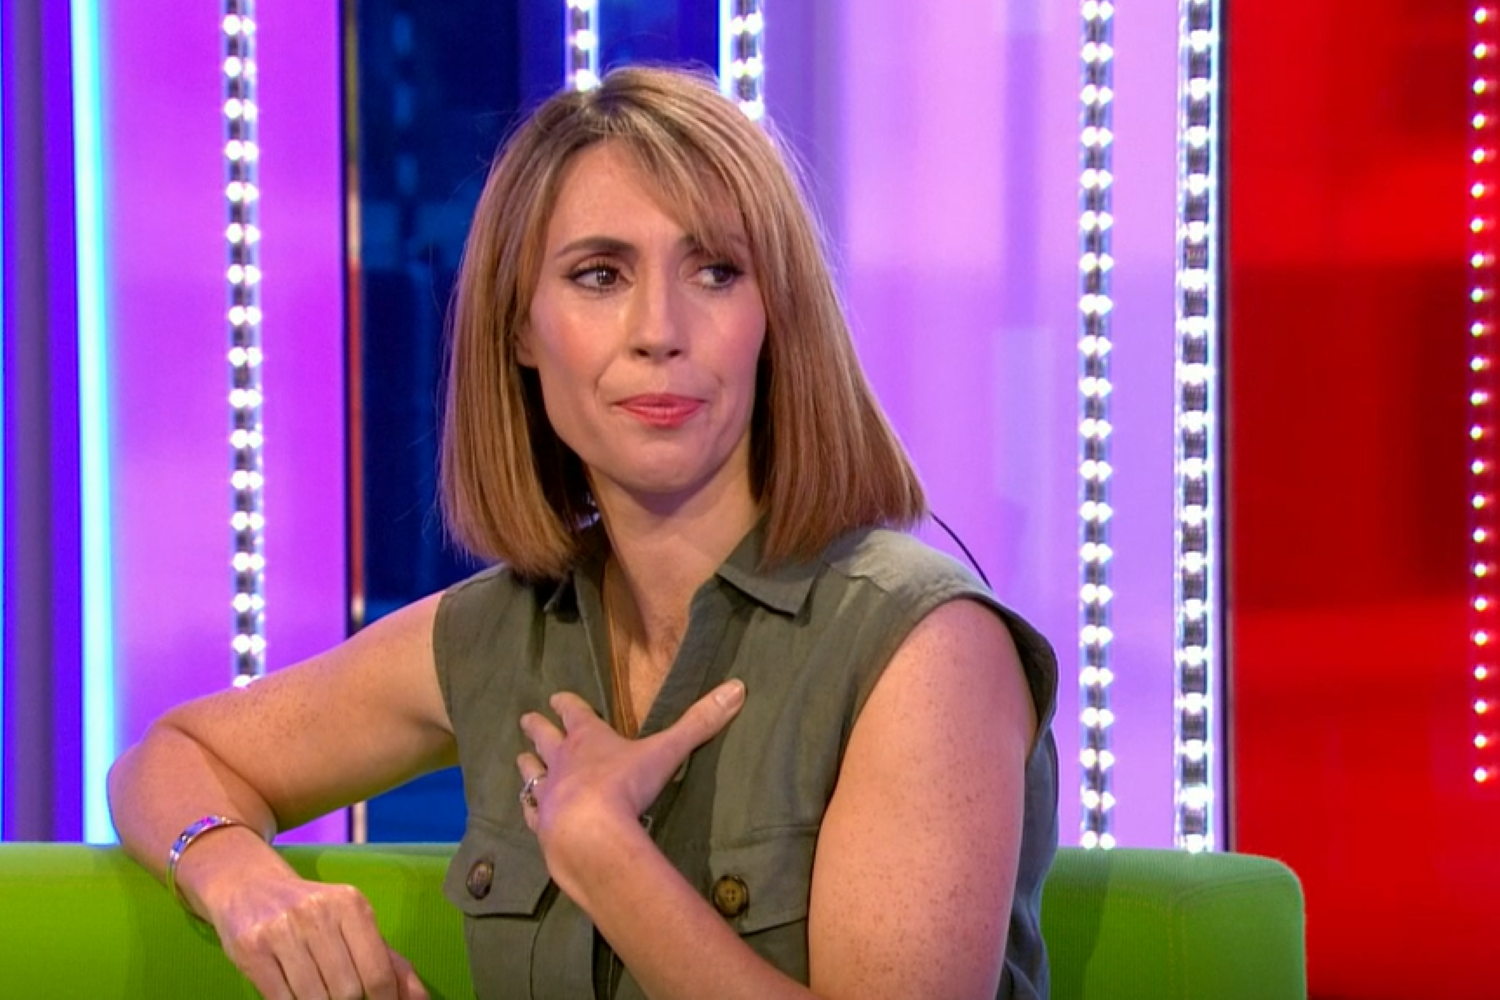 The One Show host Alex Jones breaks down in tears and fans pay tribute